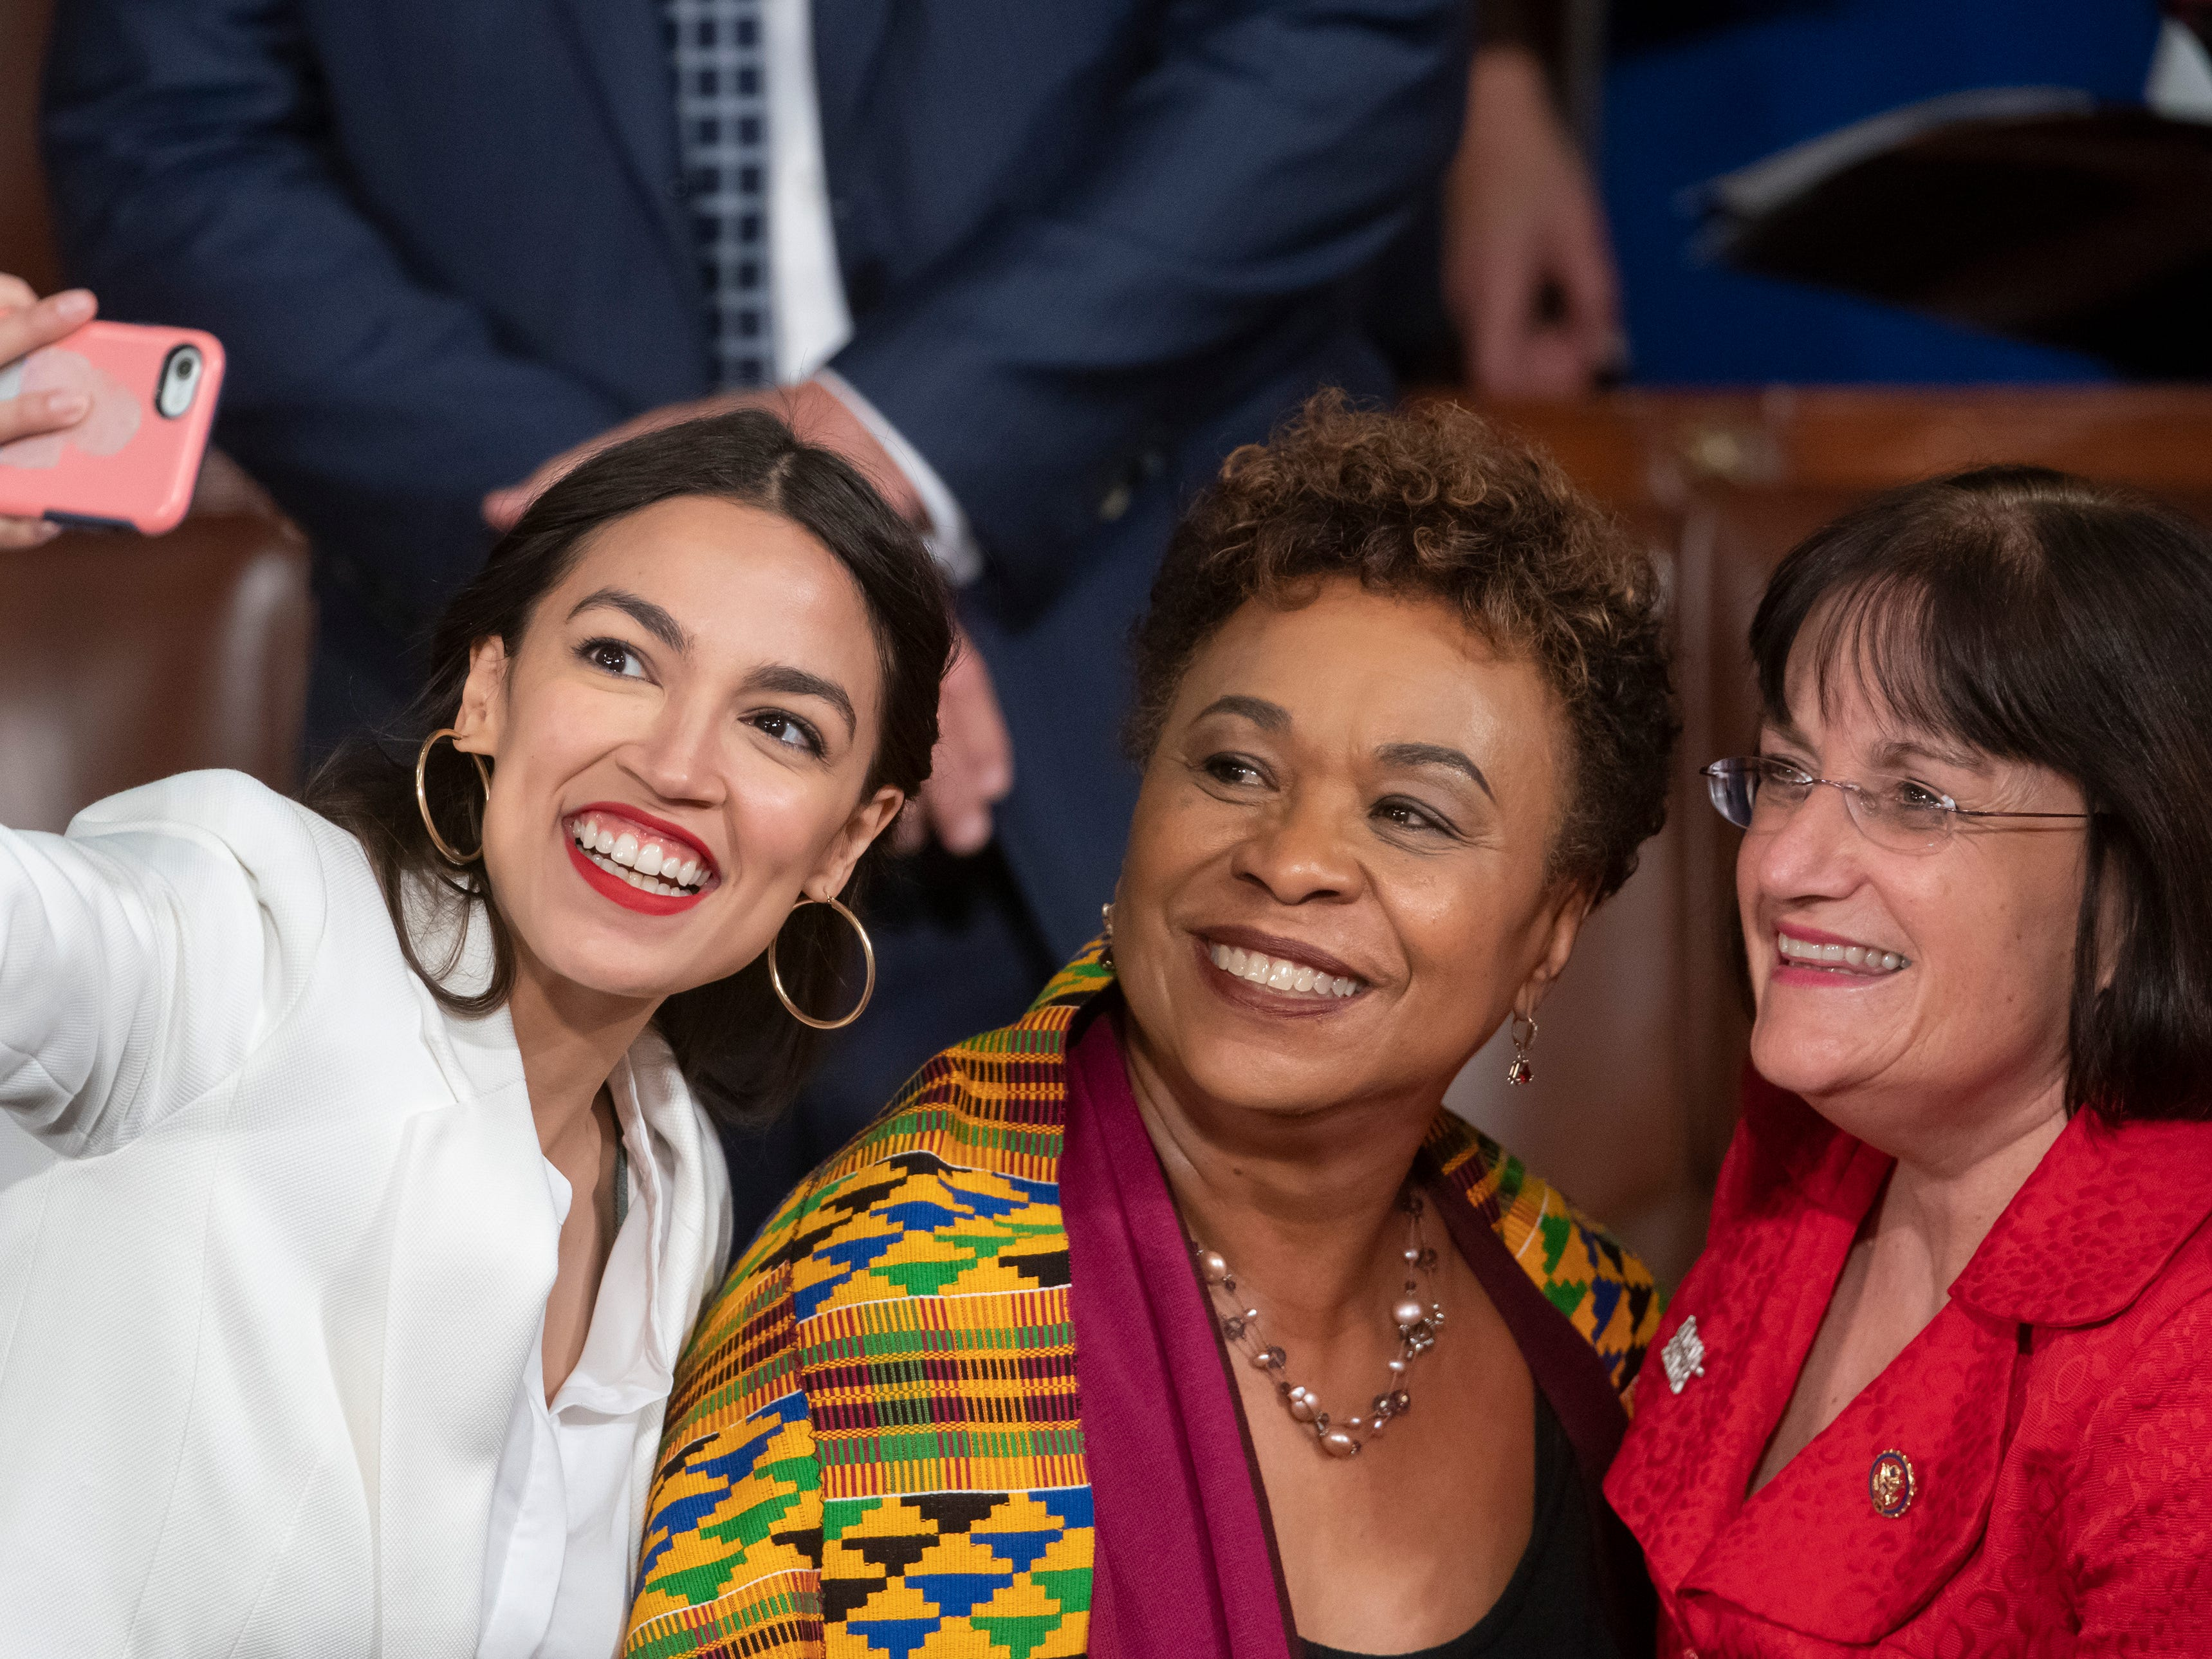 Rep.-elect Alexandria Ocasio-Cortez, a freshman Democrat representing New York's 14th Congressional District, takes a selfie with Rep. Ann McLane Kuster, D-NH, and Rep. Barbara Lee, D-Calif., on the first day of the 116th Congress with Democrats holding the majority, at the Capitol in Washington, Thursday,  Jan. 3, 2019. (AP Photo/J. Scott Applewhite) ORG XMIT: DCSA105